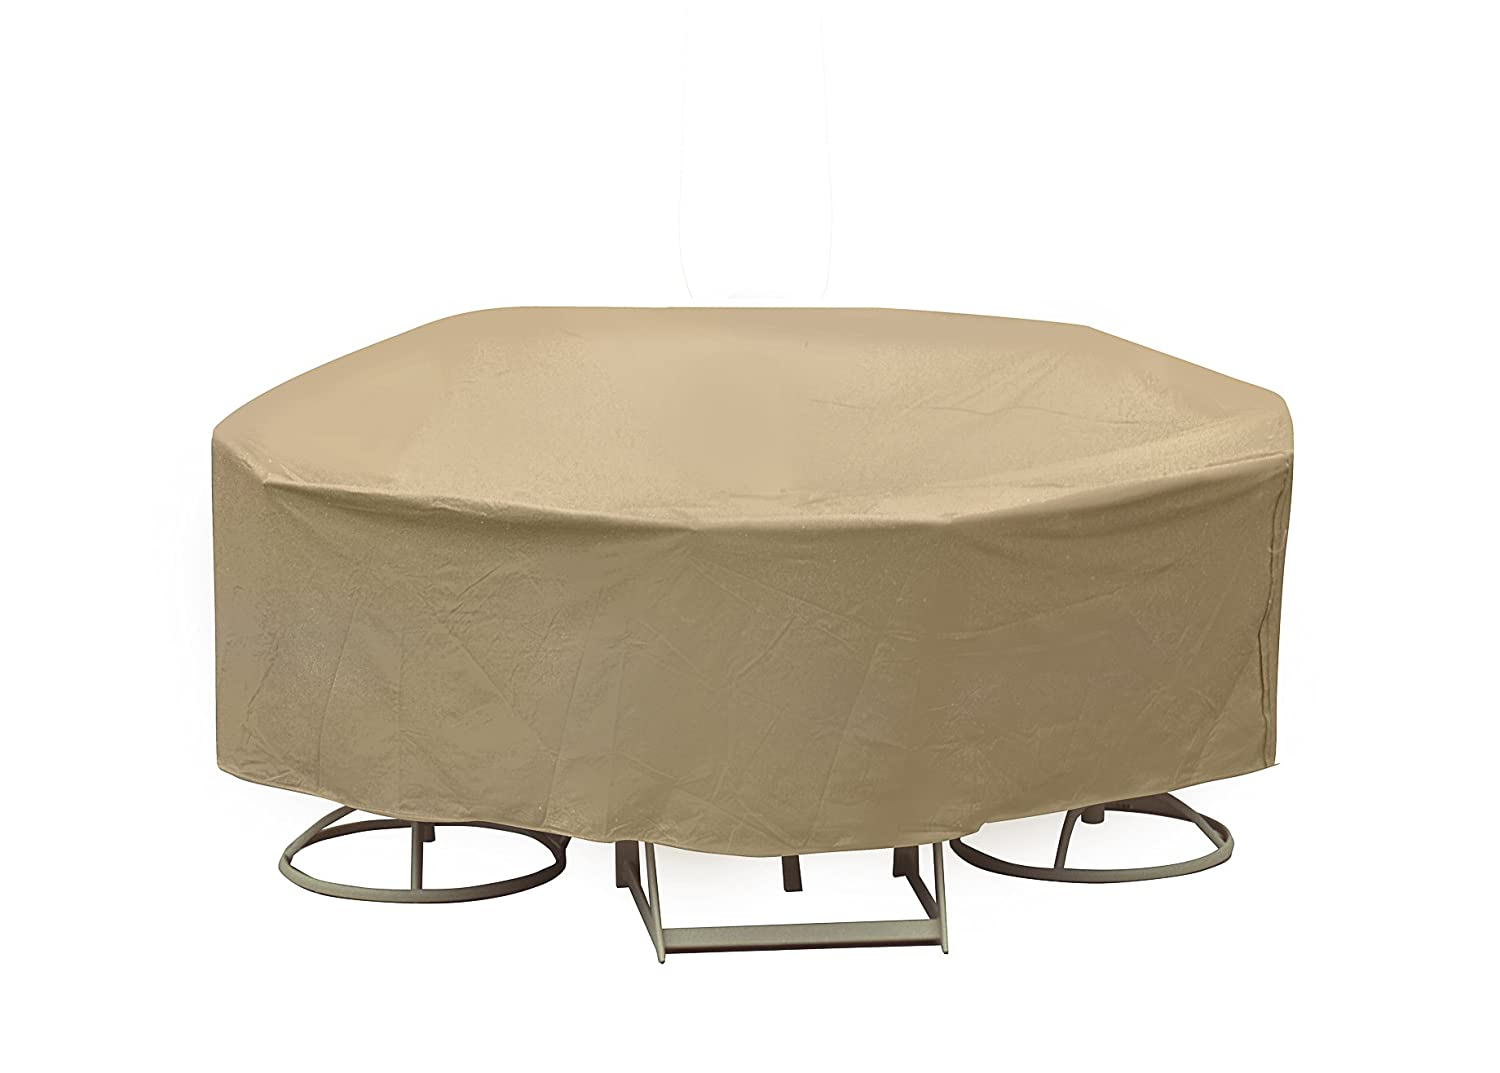 Amazon com protective covers weatherproof patio table and chair set cover 60 inch round table tan patio chair covers garden outdoor